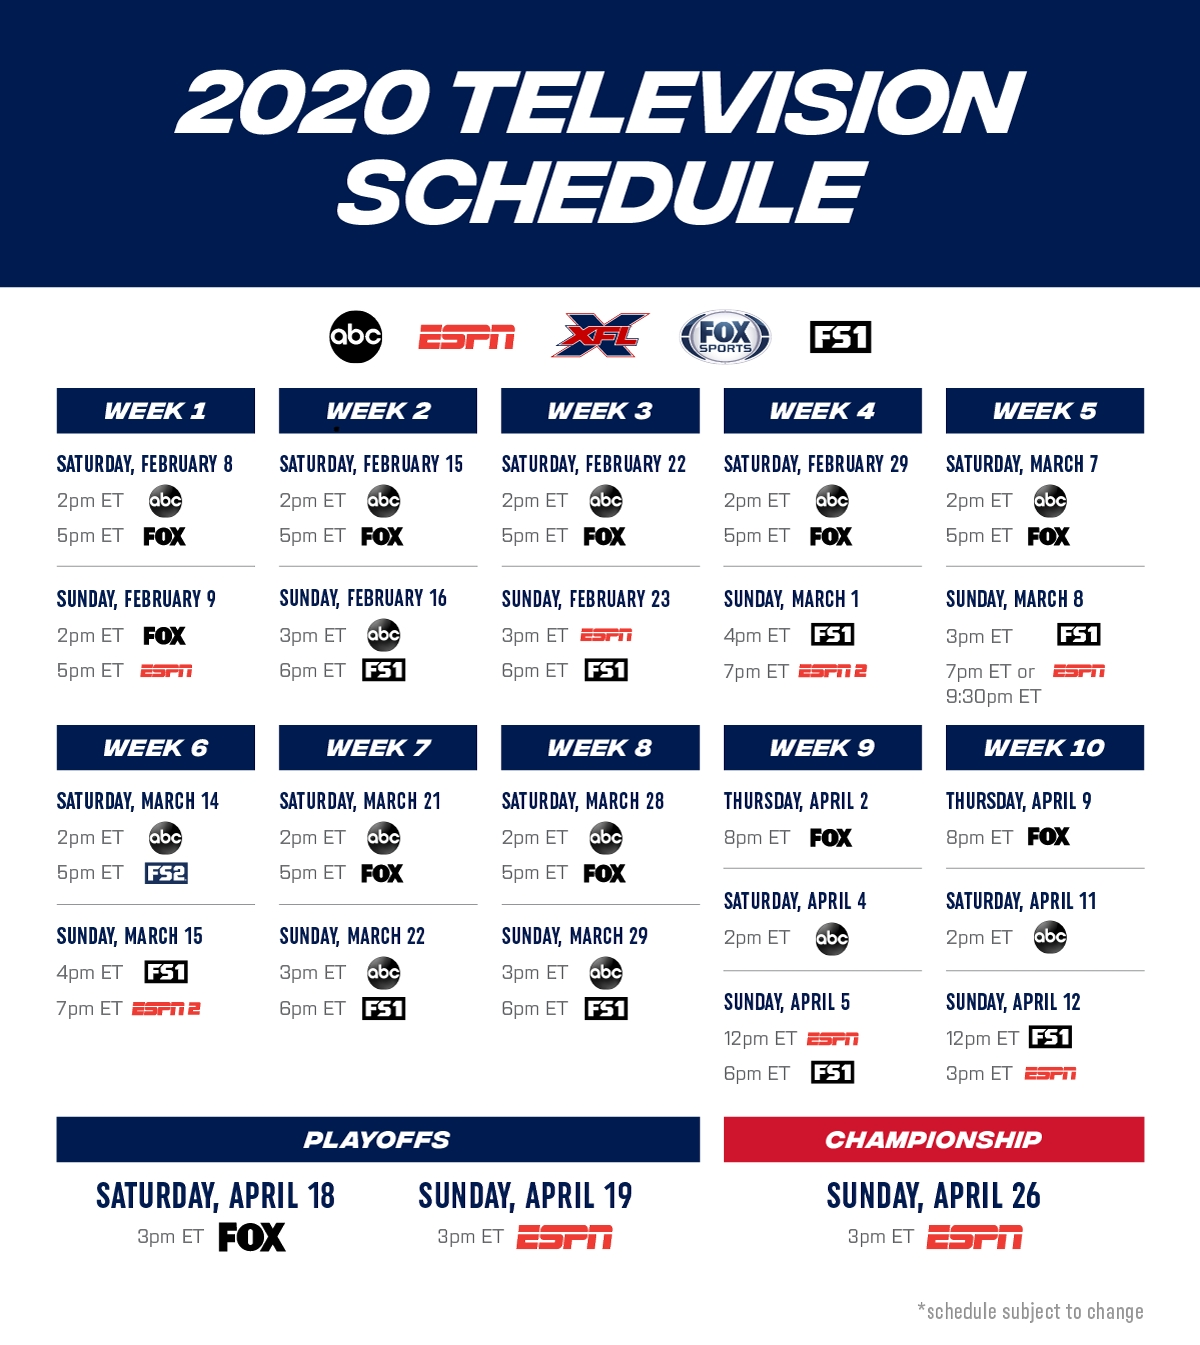 Xfl 2020 Television Schedule Review within 2019 2020 Nfl Schedule Printable